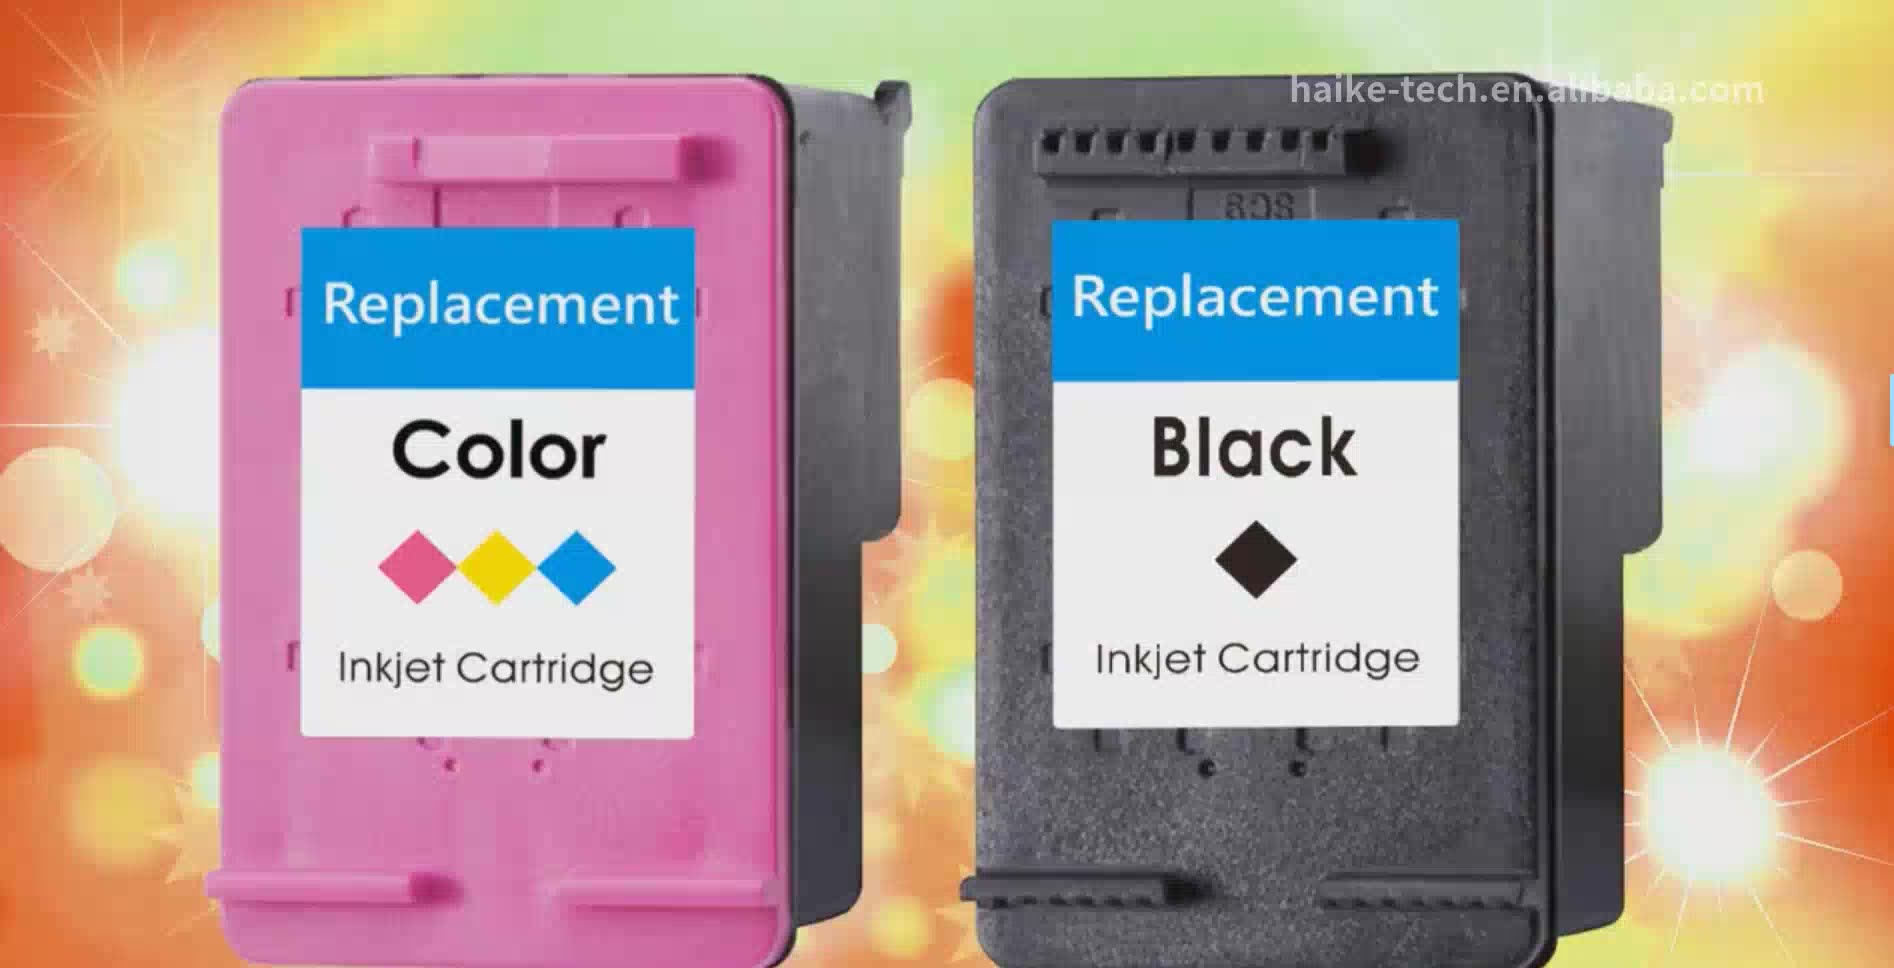 Compatible HP 63 63XL Ink Cartridge for Deskjet 1110 1111 1112 2130 2131 2132 2133 2134 2136 2138 3630 3632 3634 3636 3637 3638